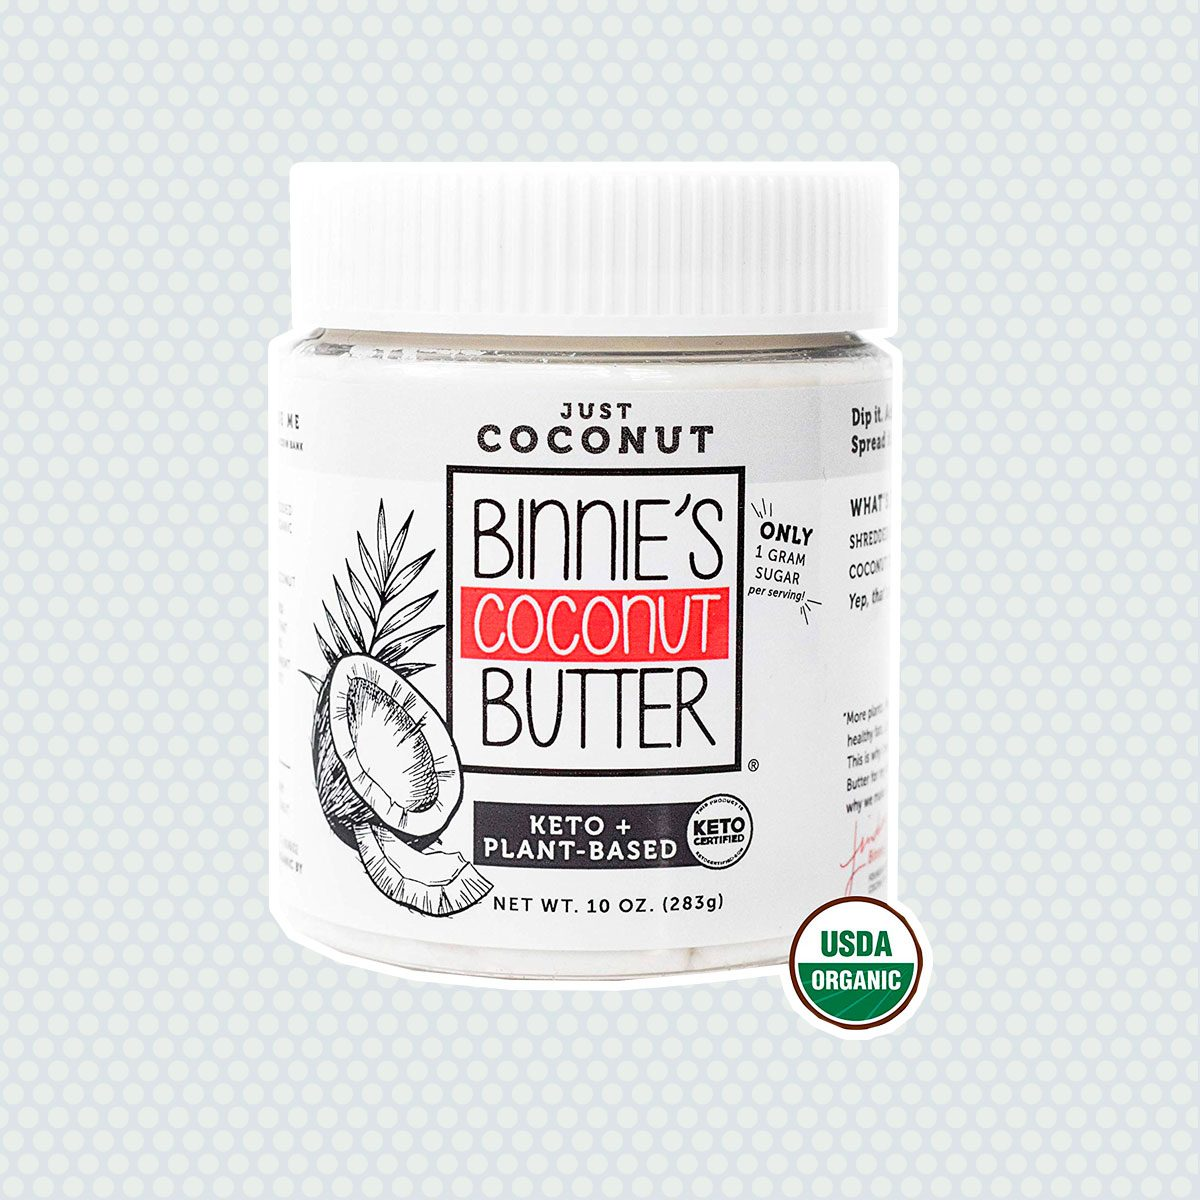 Binnie's Coconut Butter Organic Spread